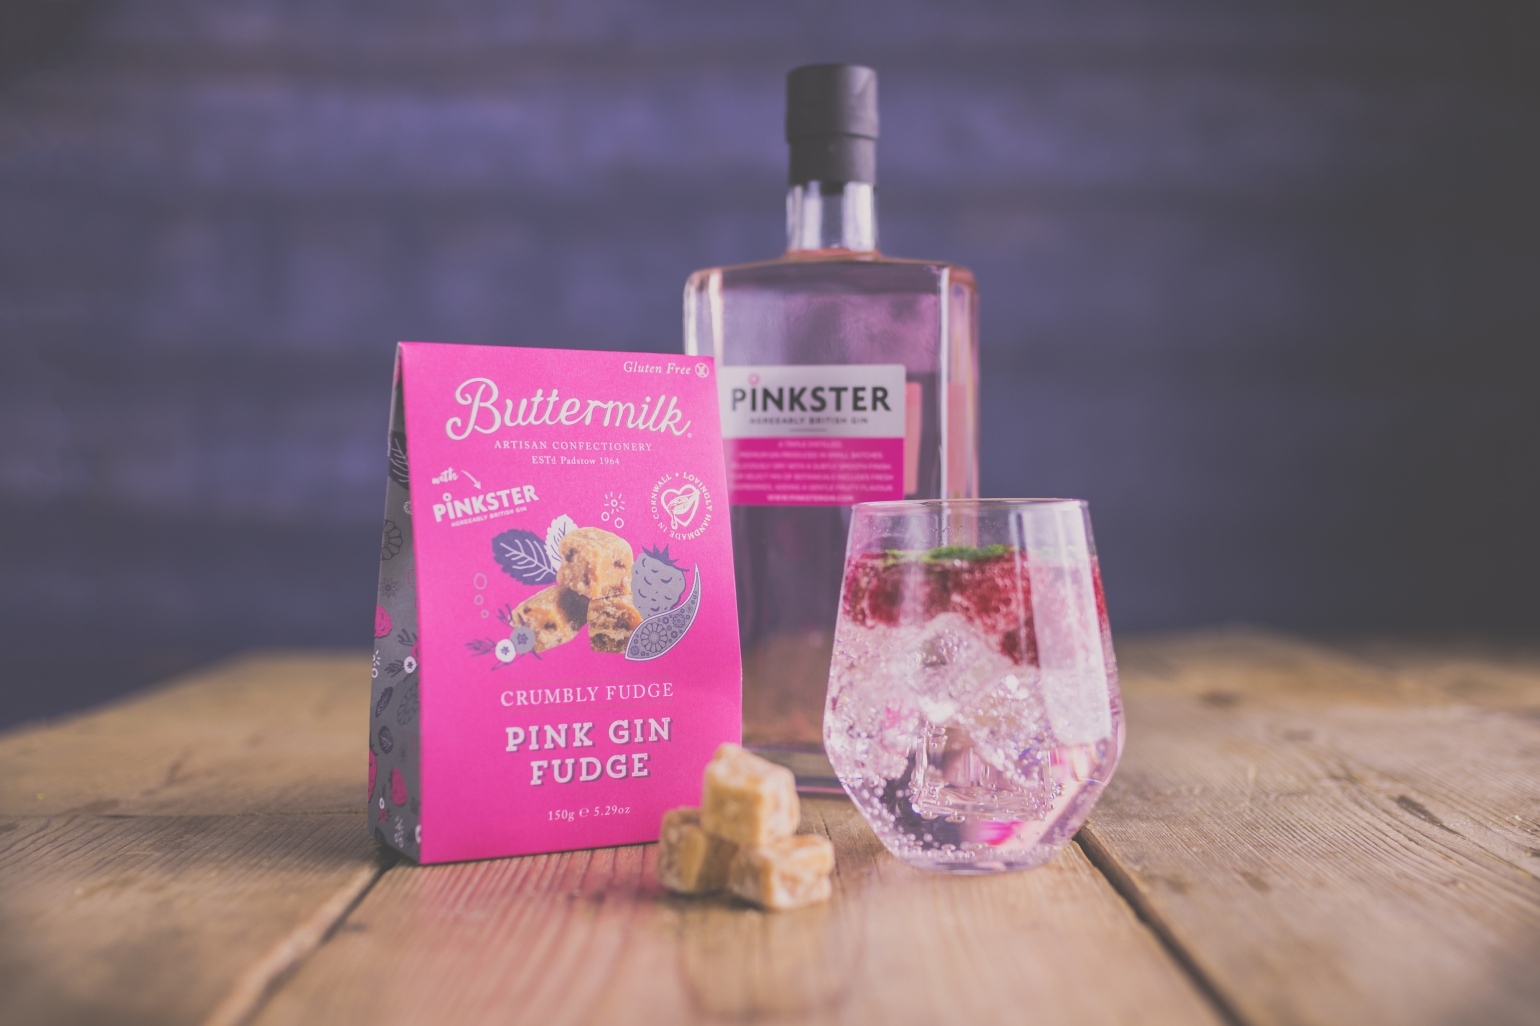 Buttermilk and Pinkster pink gin launch